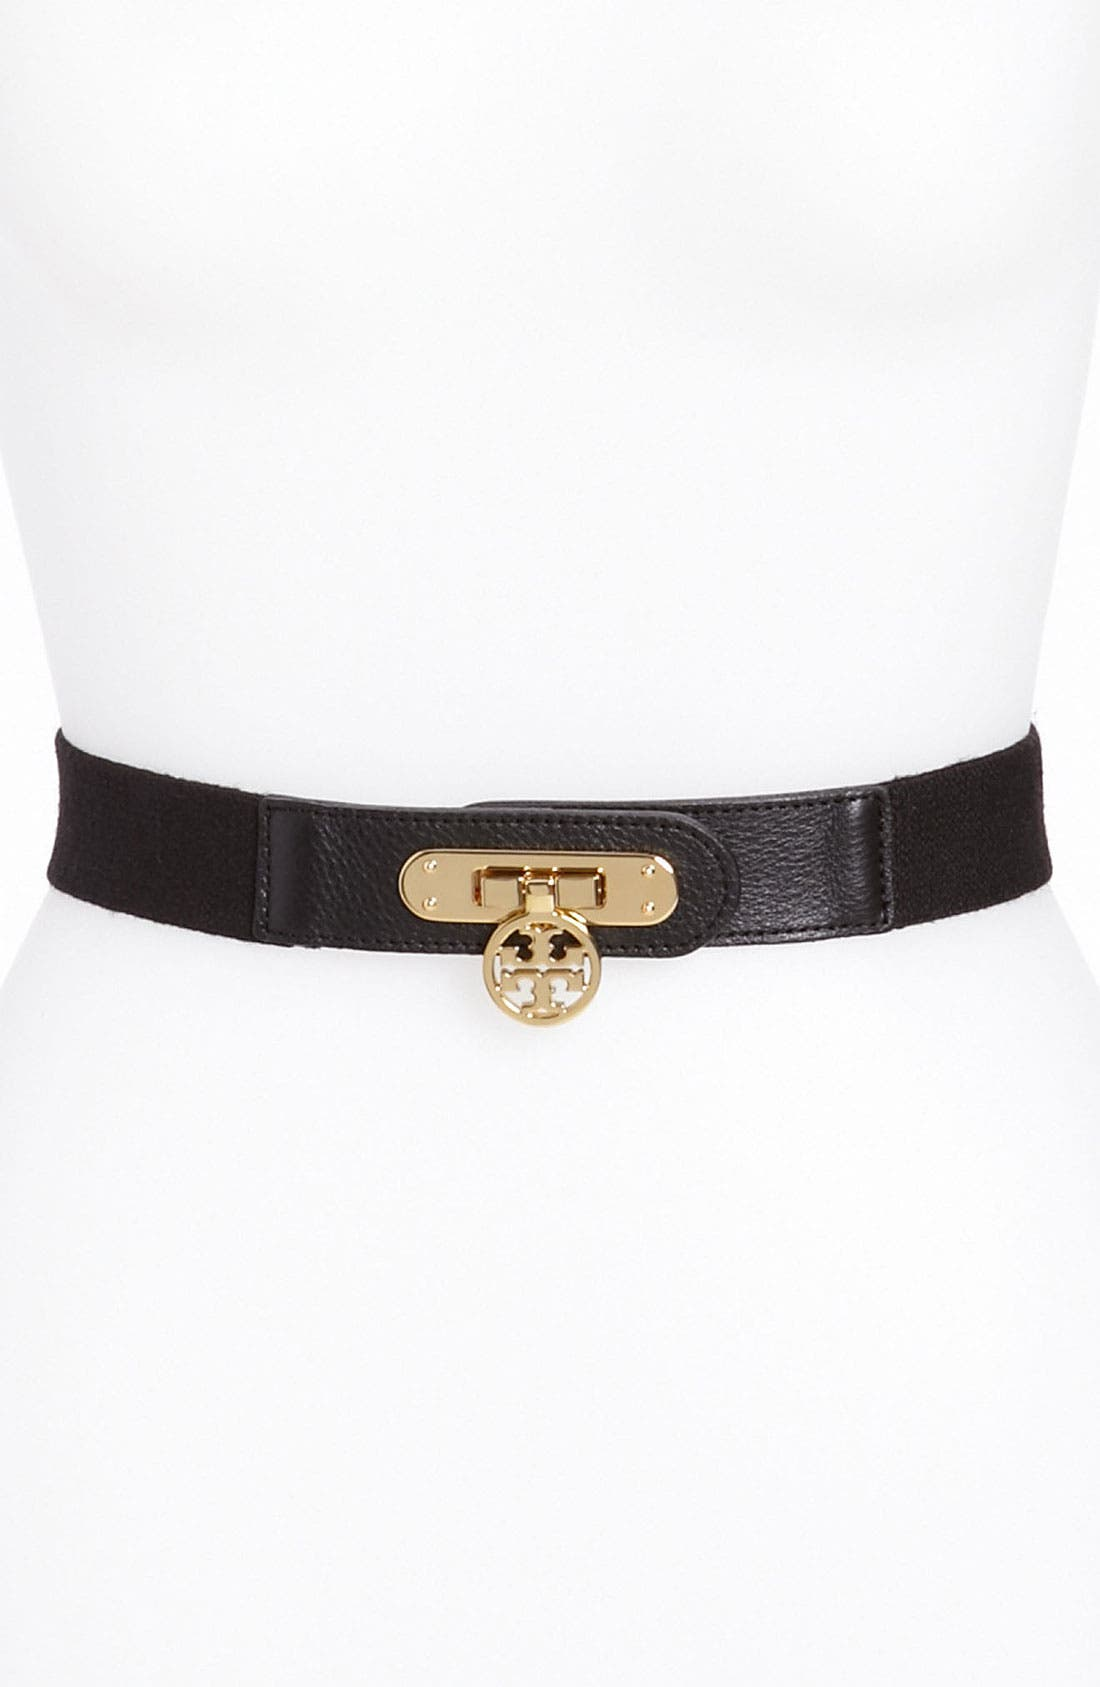 Main Image - Tory Burch 'Daria' Stretch Belt